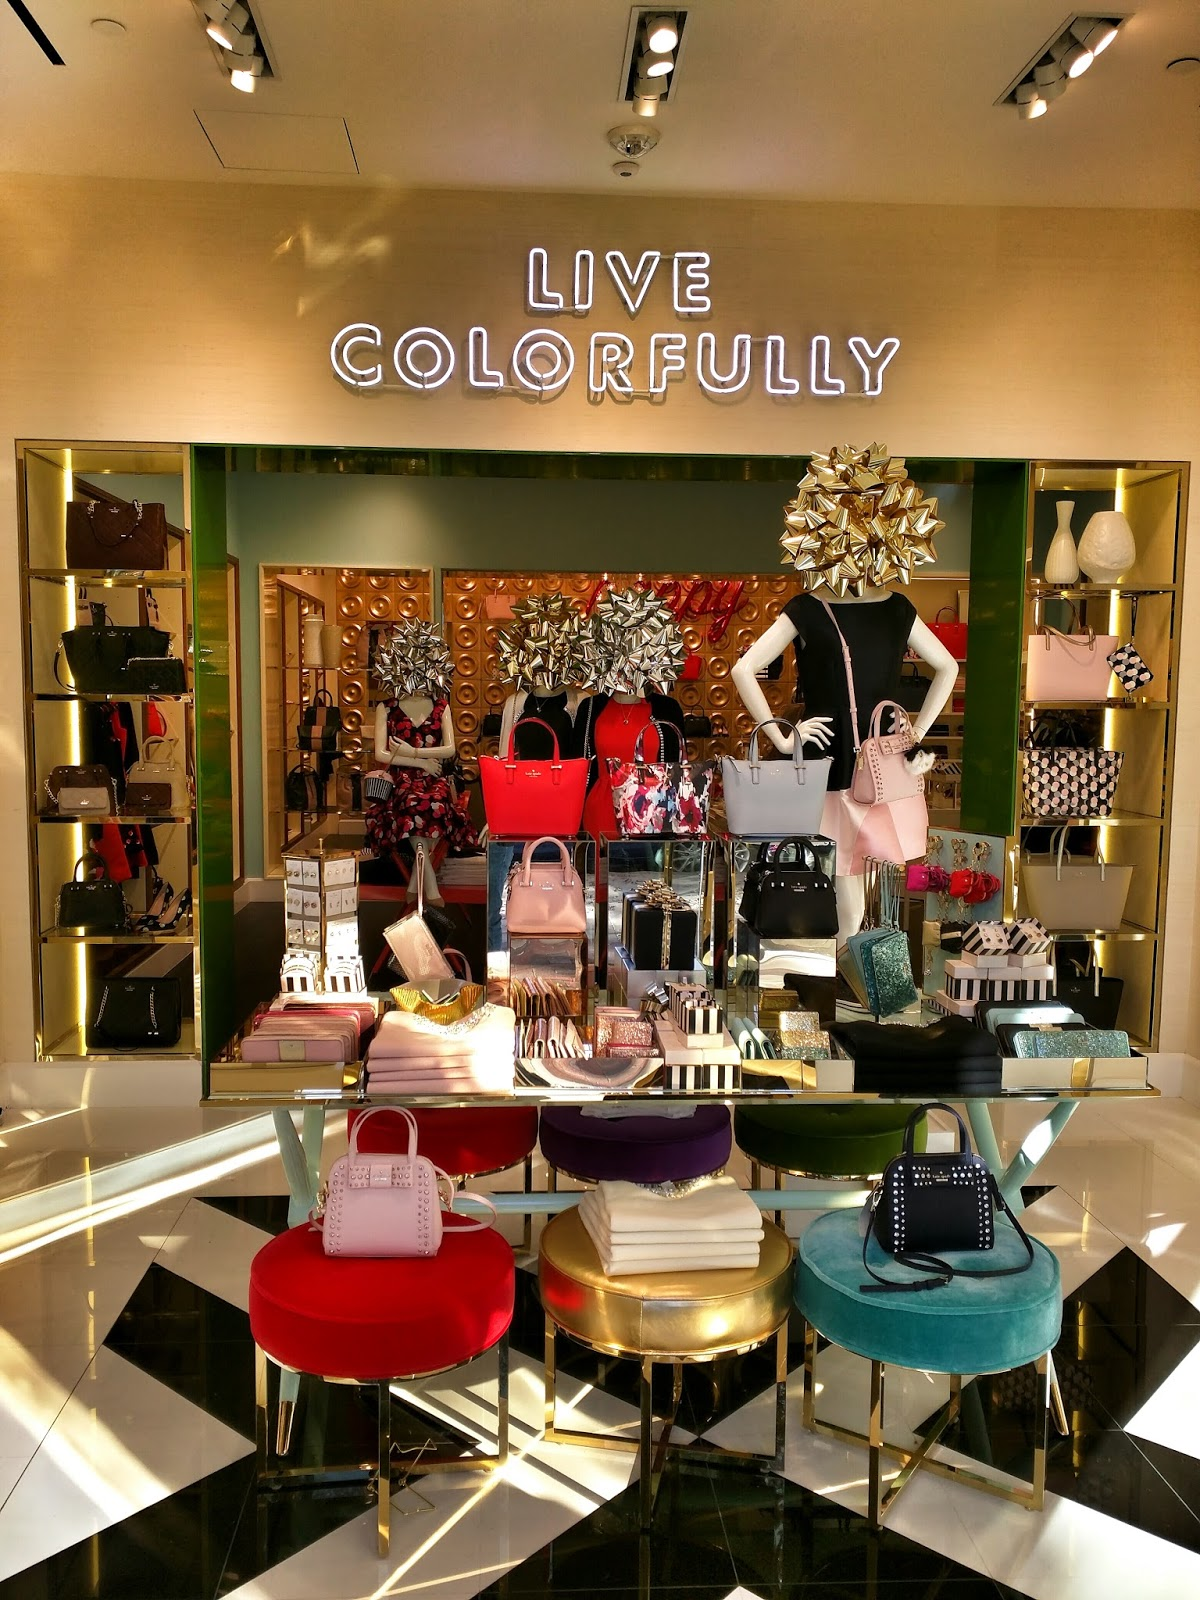 53b6db75451f ... was in my previous sneak preview of the interior. But Kate Spade fans  will likely find the rainbow display of handbag options more than make up  for it.